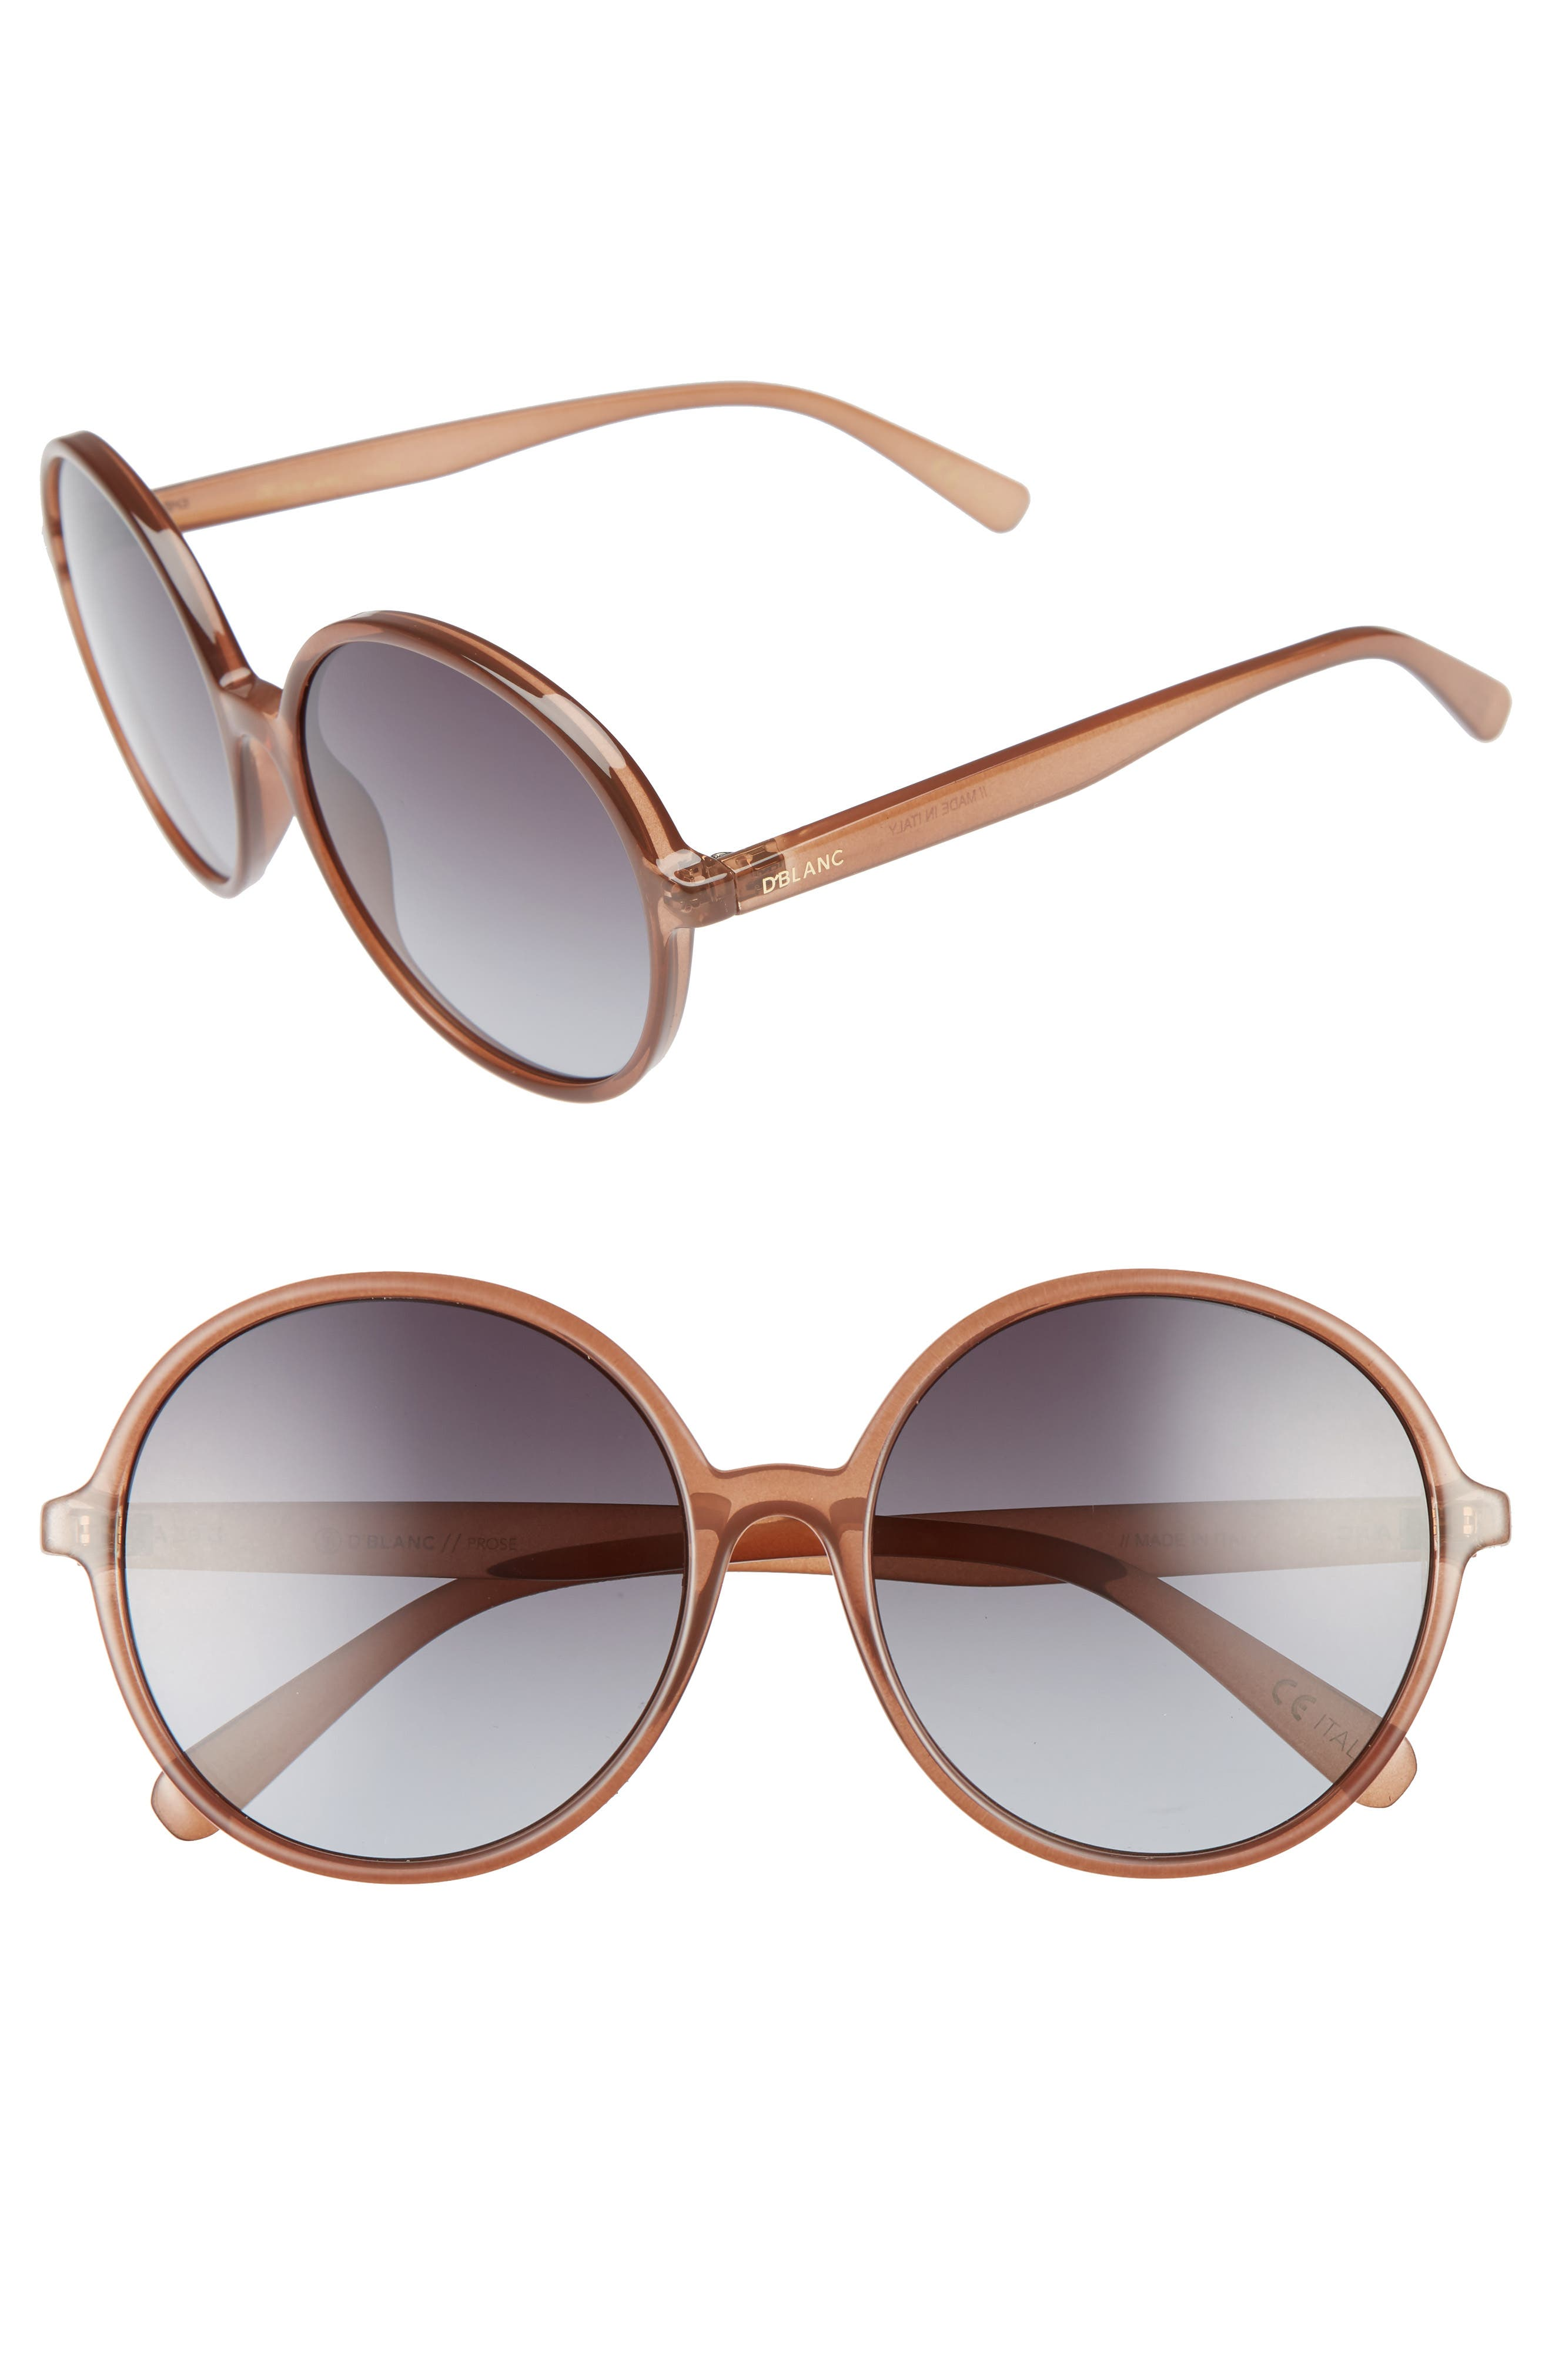 Main Image - D'BLANC Prose 59mm Round Sunglasses